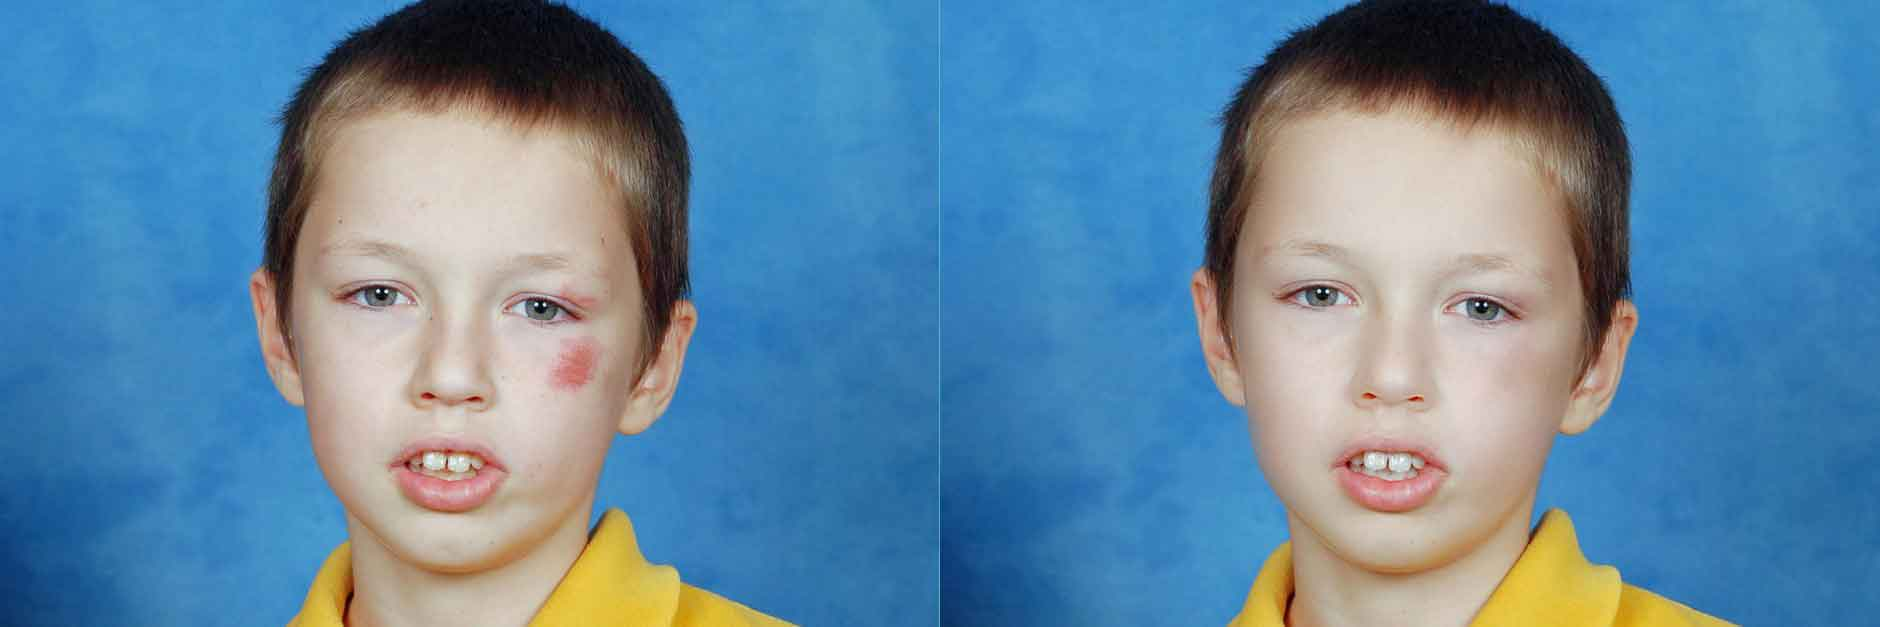 Retouch professionally 2 images